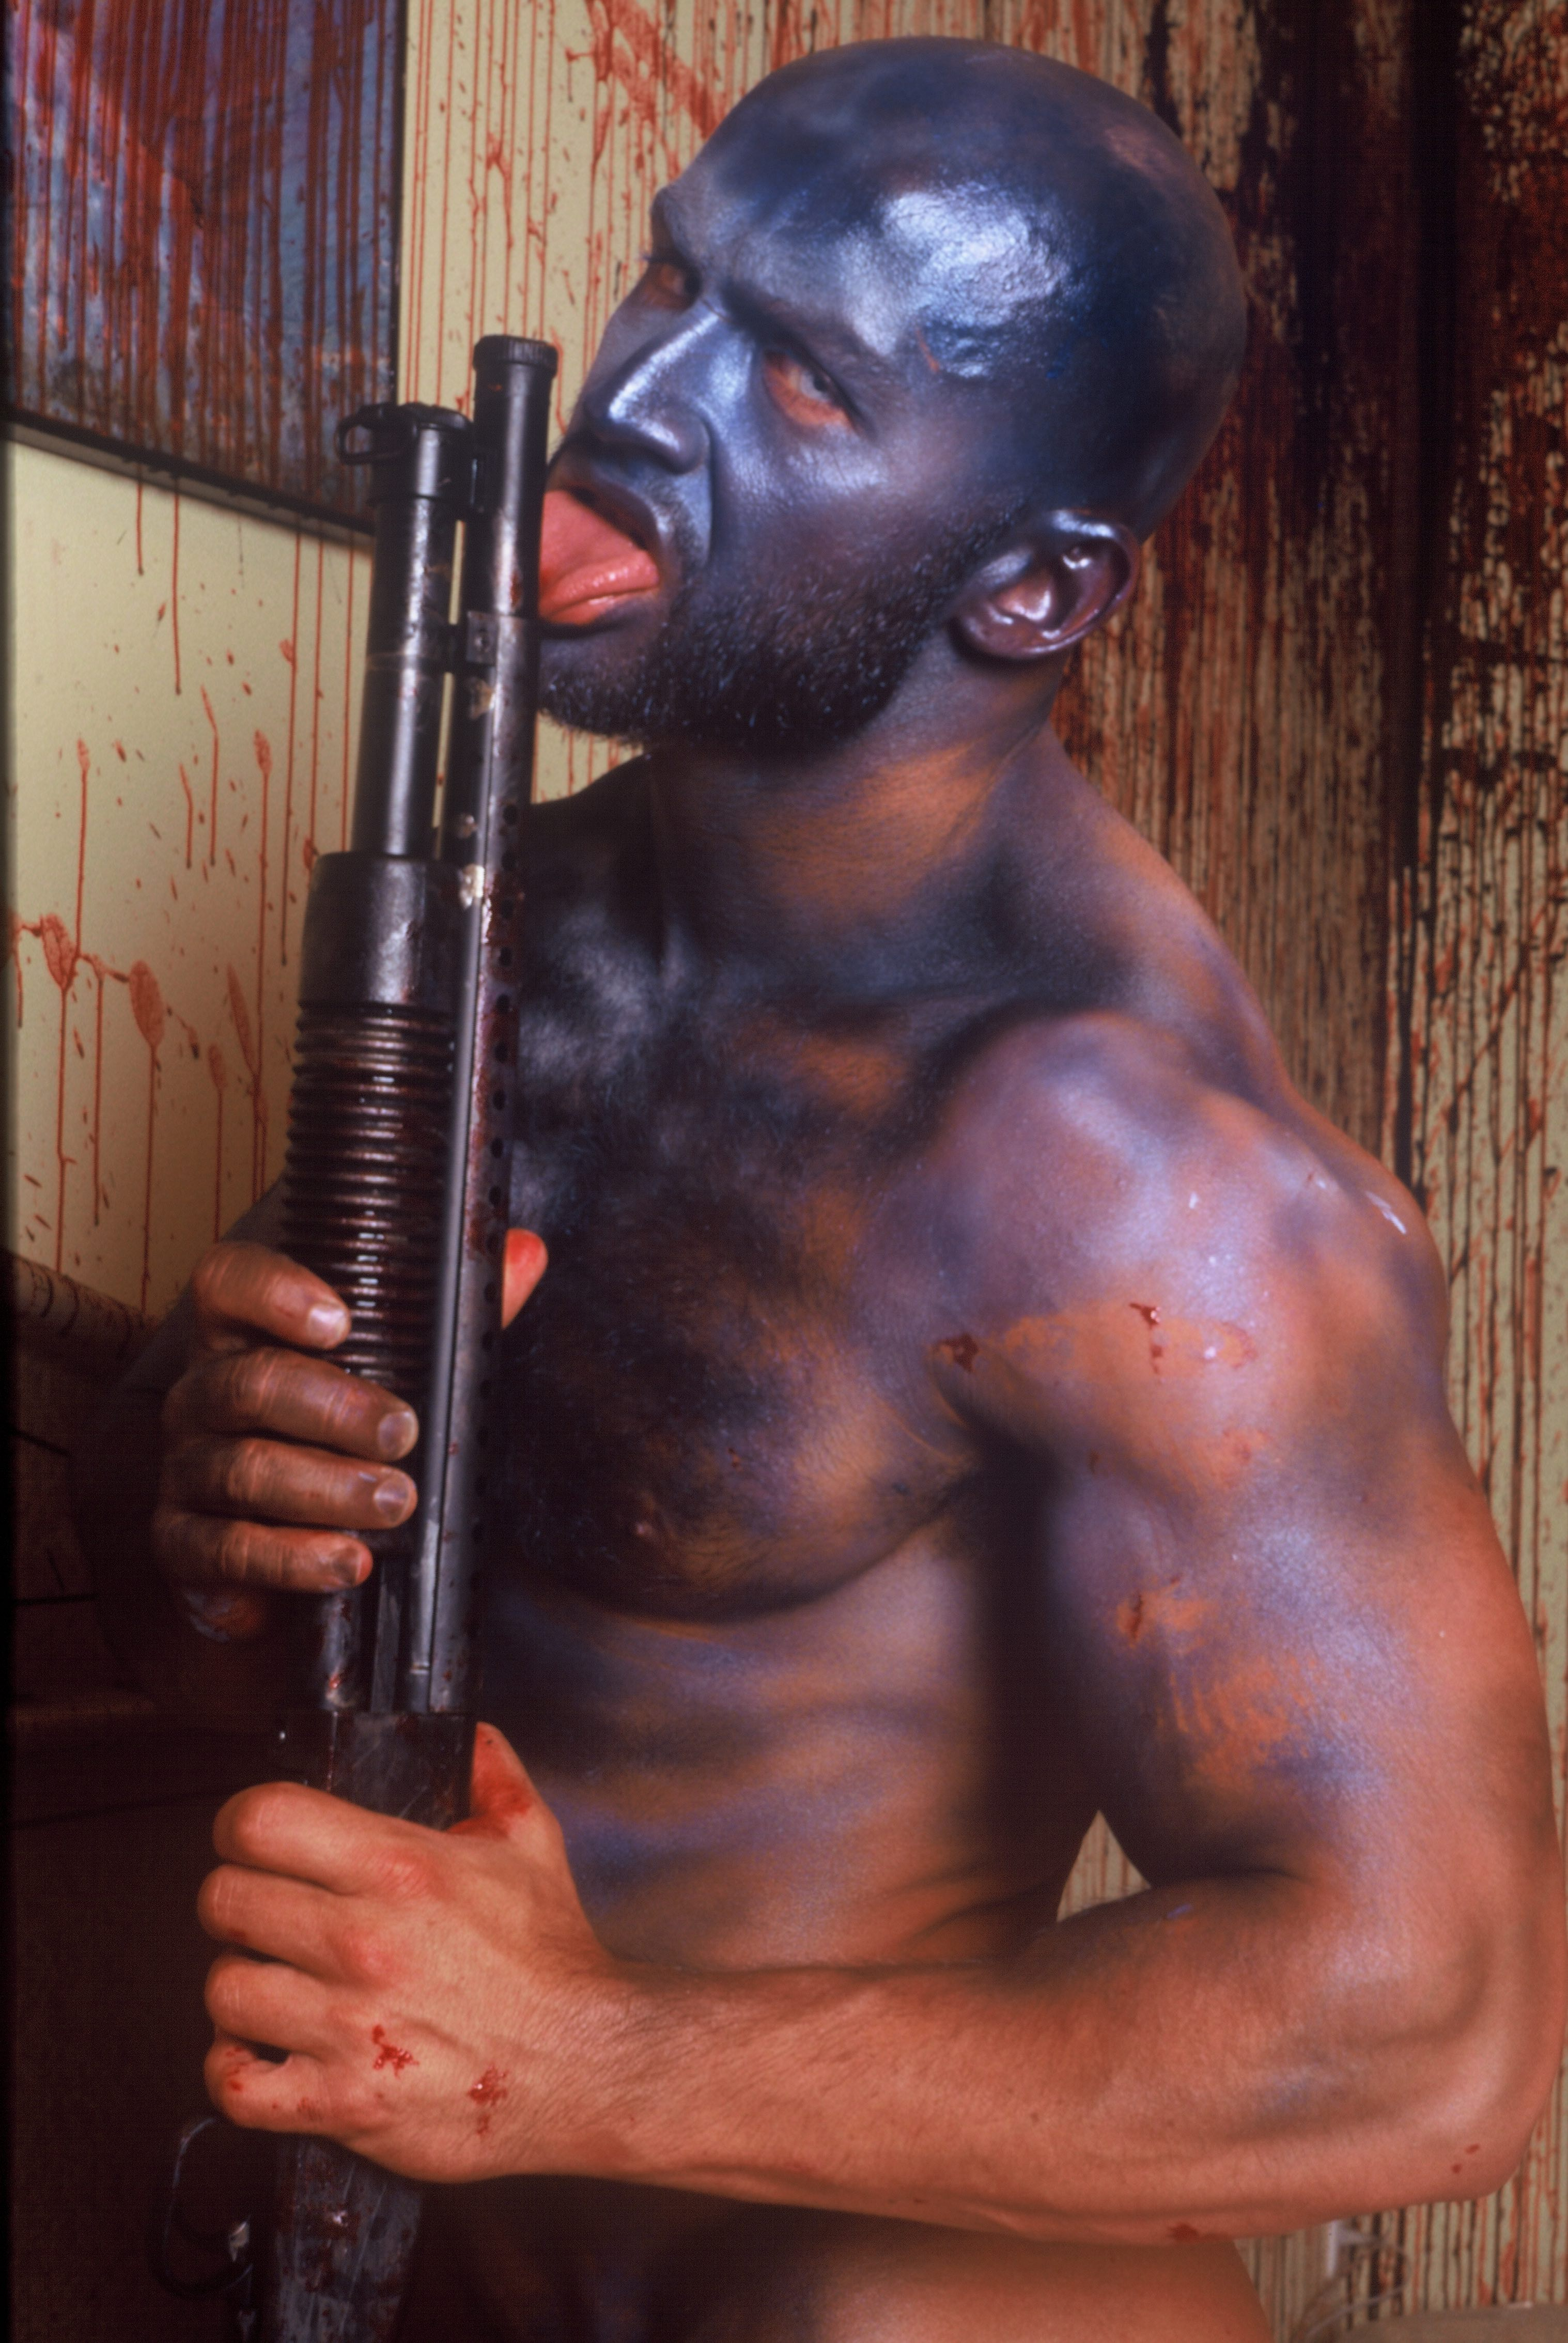 Untitled Zombie series - credit - Bruce LaBruce